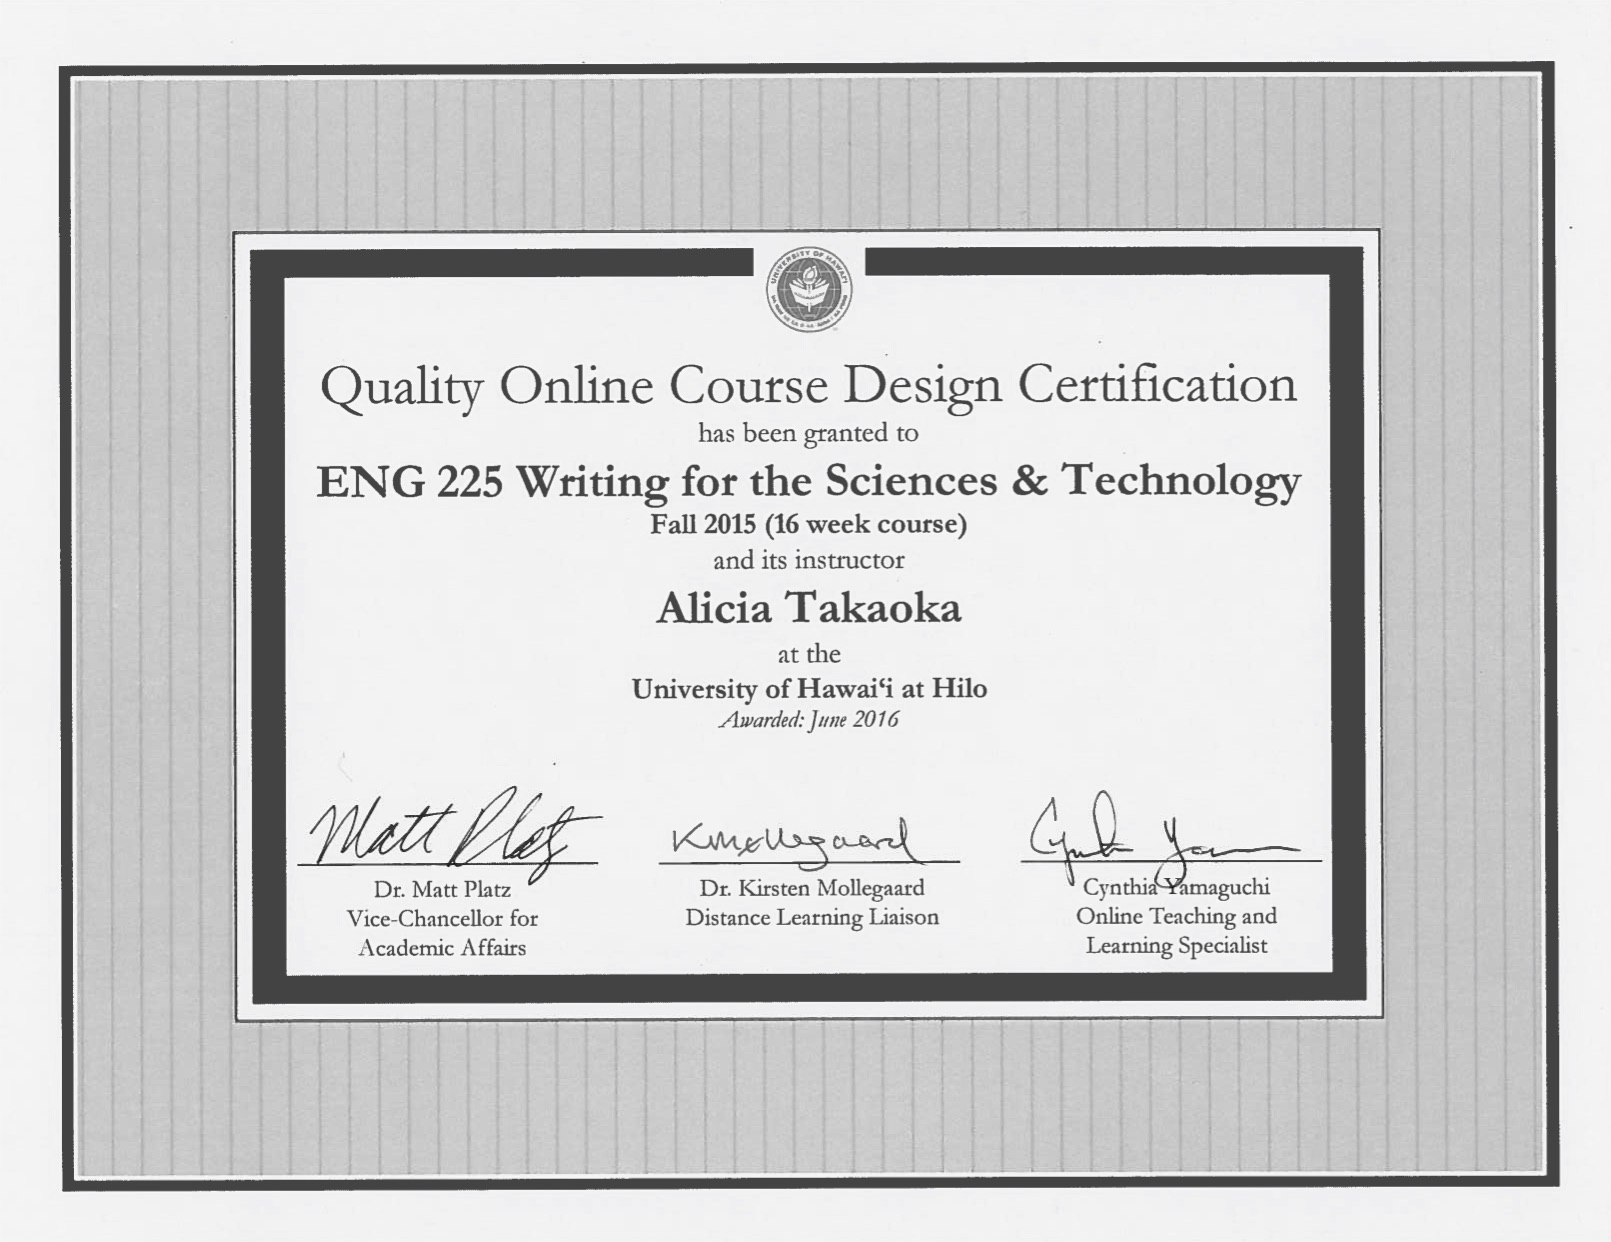 Certified quality online courses quality online course design certificate awarded to alicia takaoka xflitez Image collections